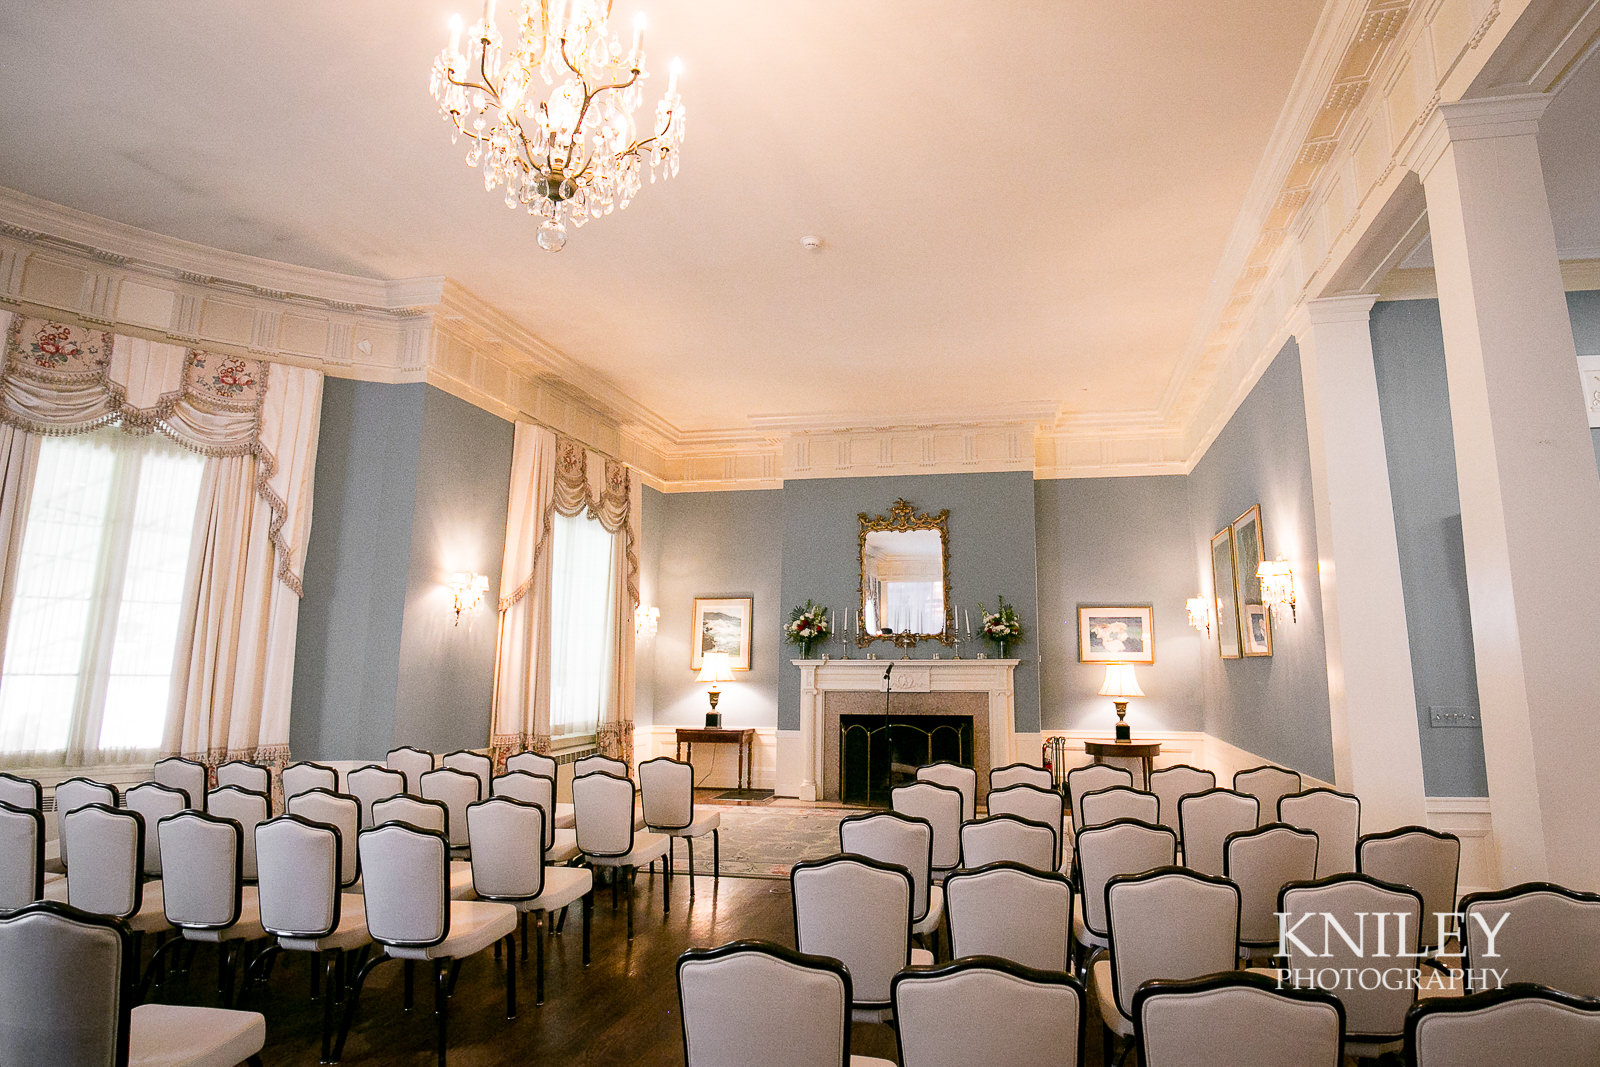 057 - Rochester NY wedding pictures - Genesee Valley Club - Ceremony and Reception - IMG_5933.jpg